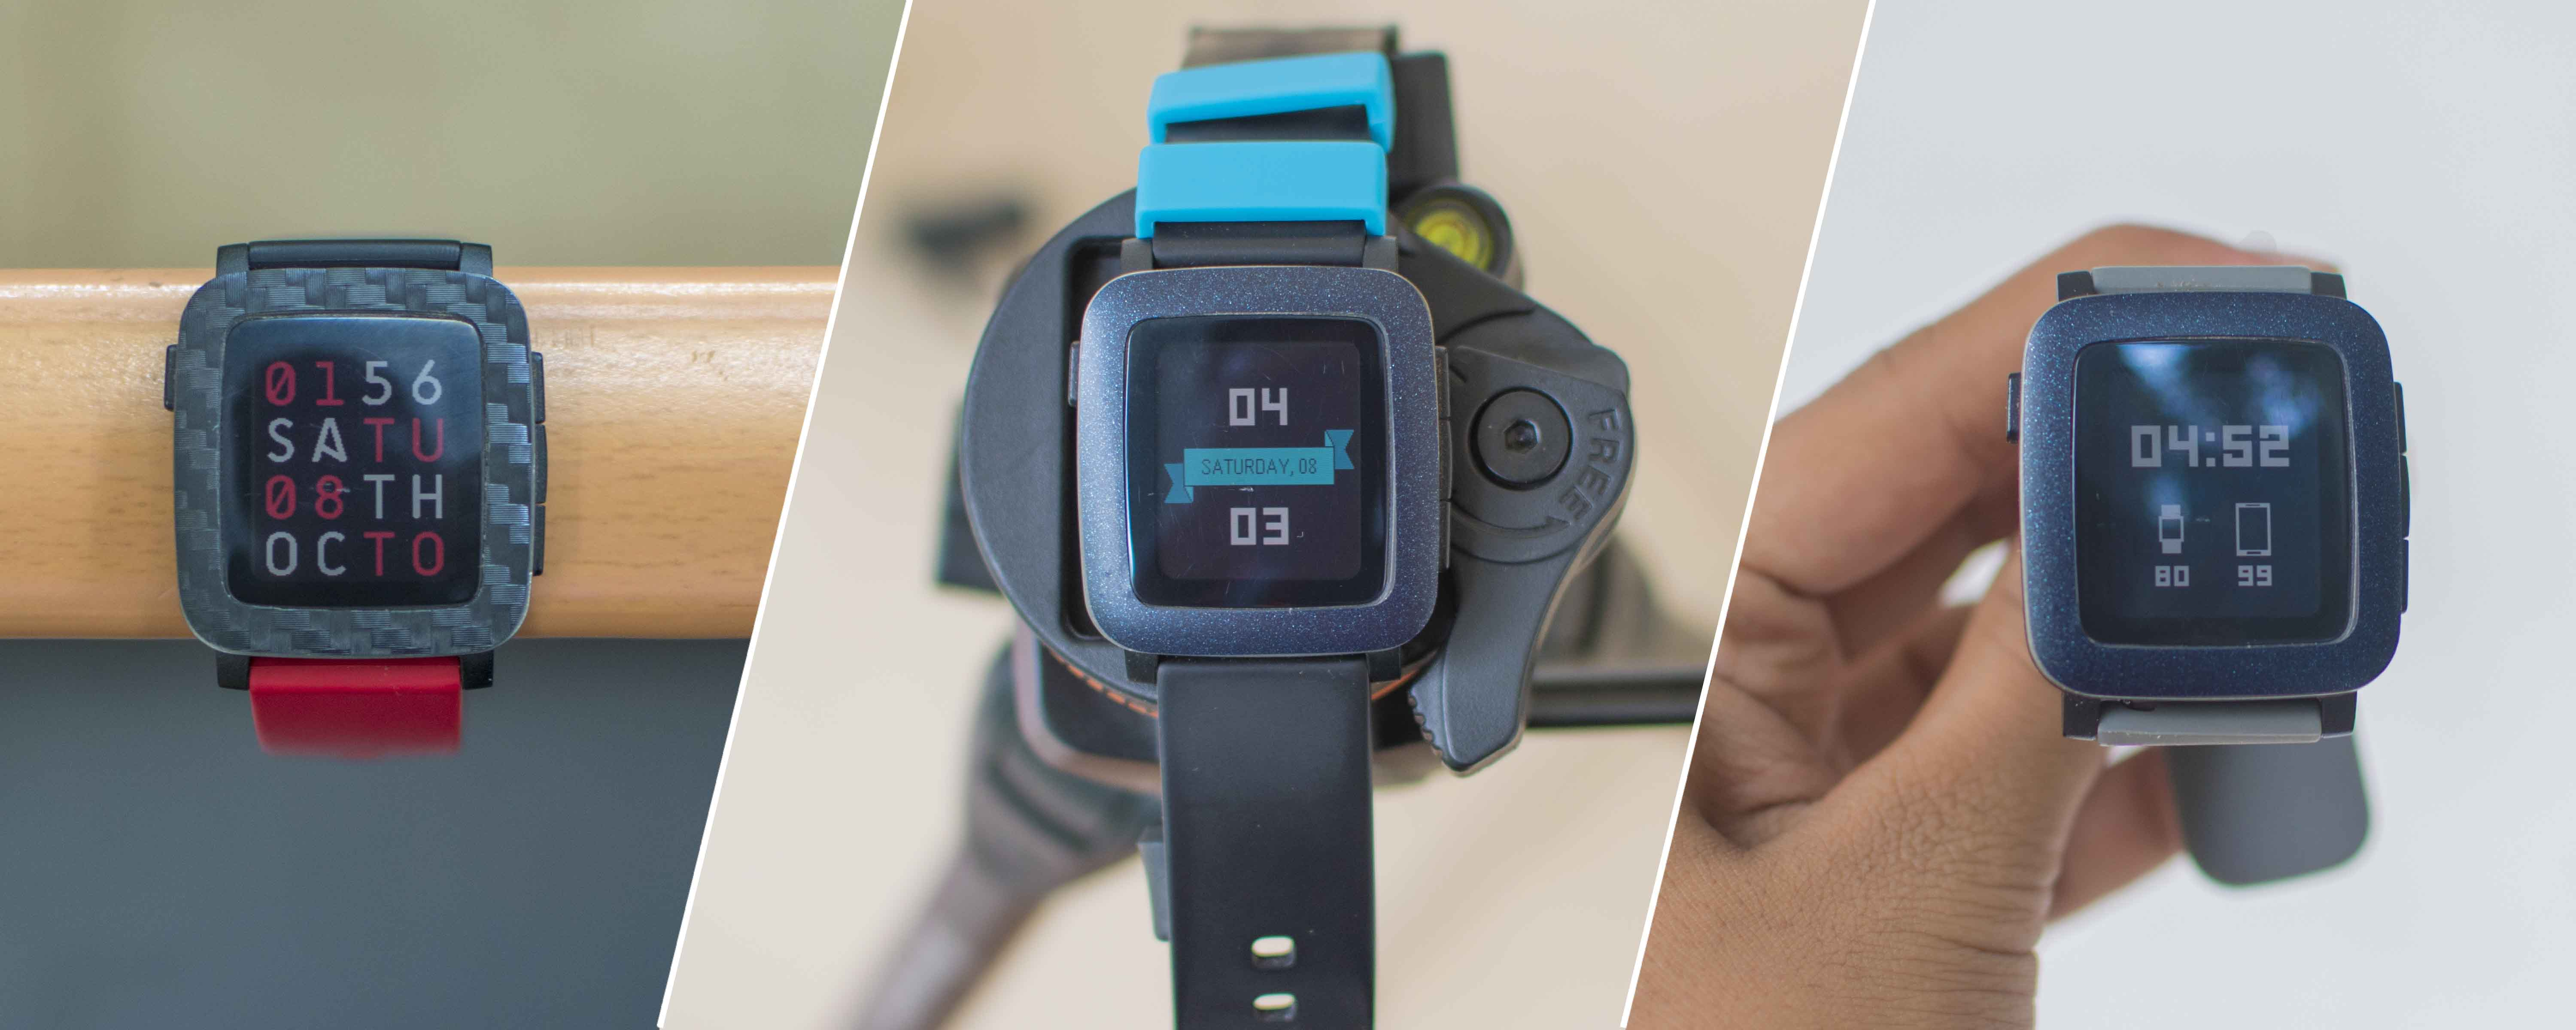 Best Watchfaces for Pebble Time and Pebble Time Steel